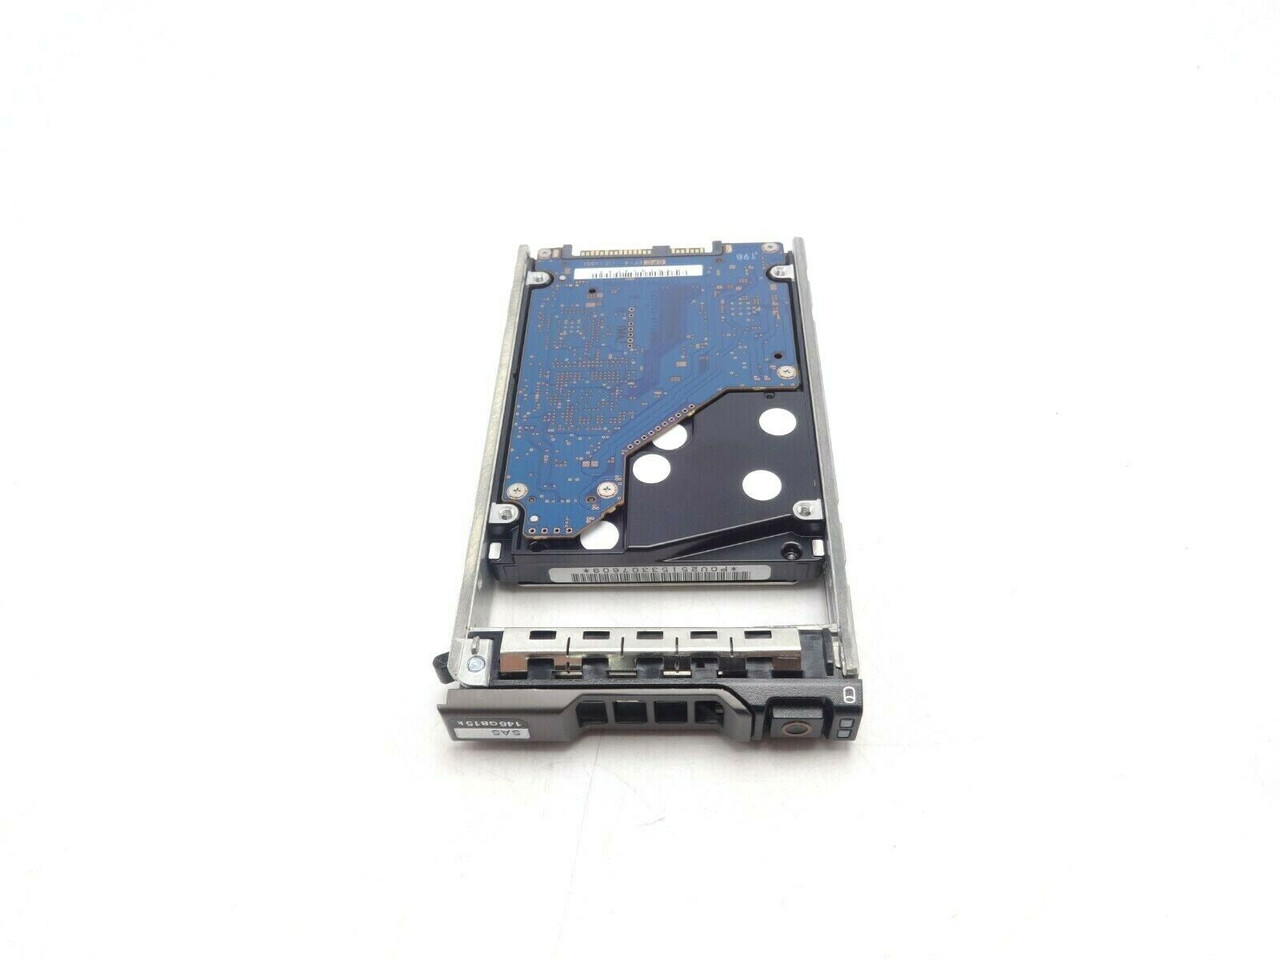 Dell W328K 146GB 15K 2.5 SAS 6GBps Small Form Factor Hard Drive with tray